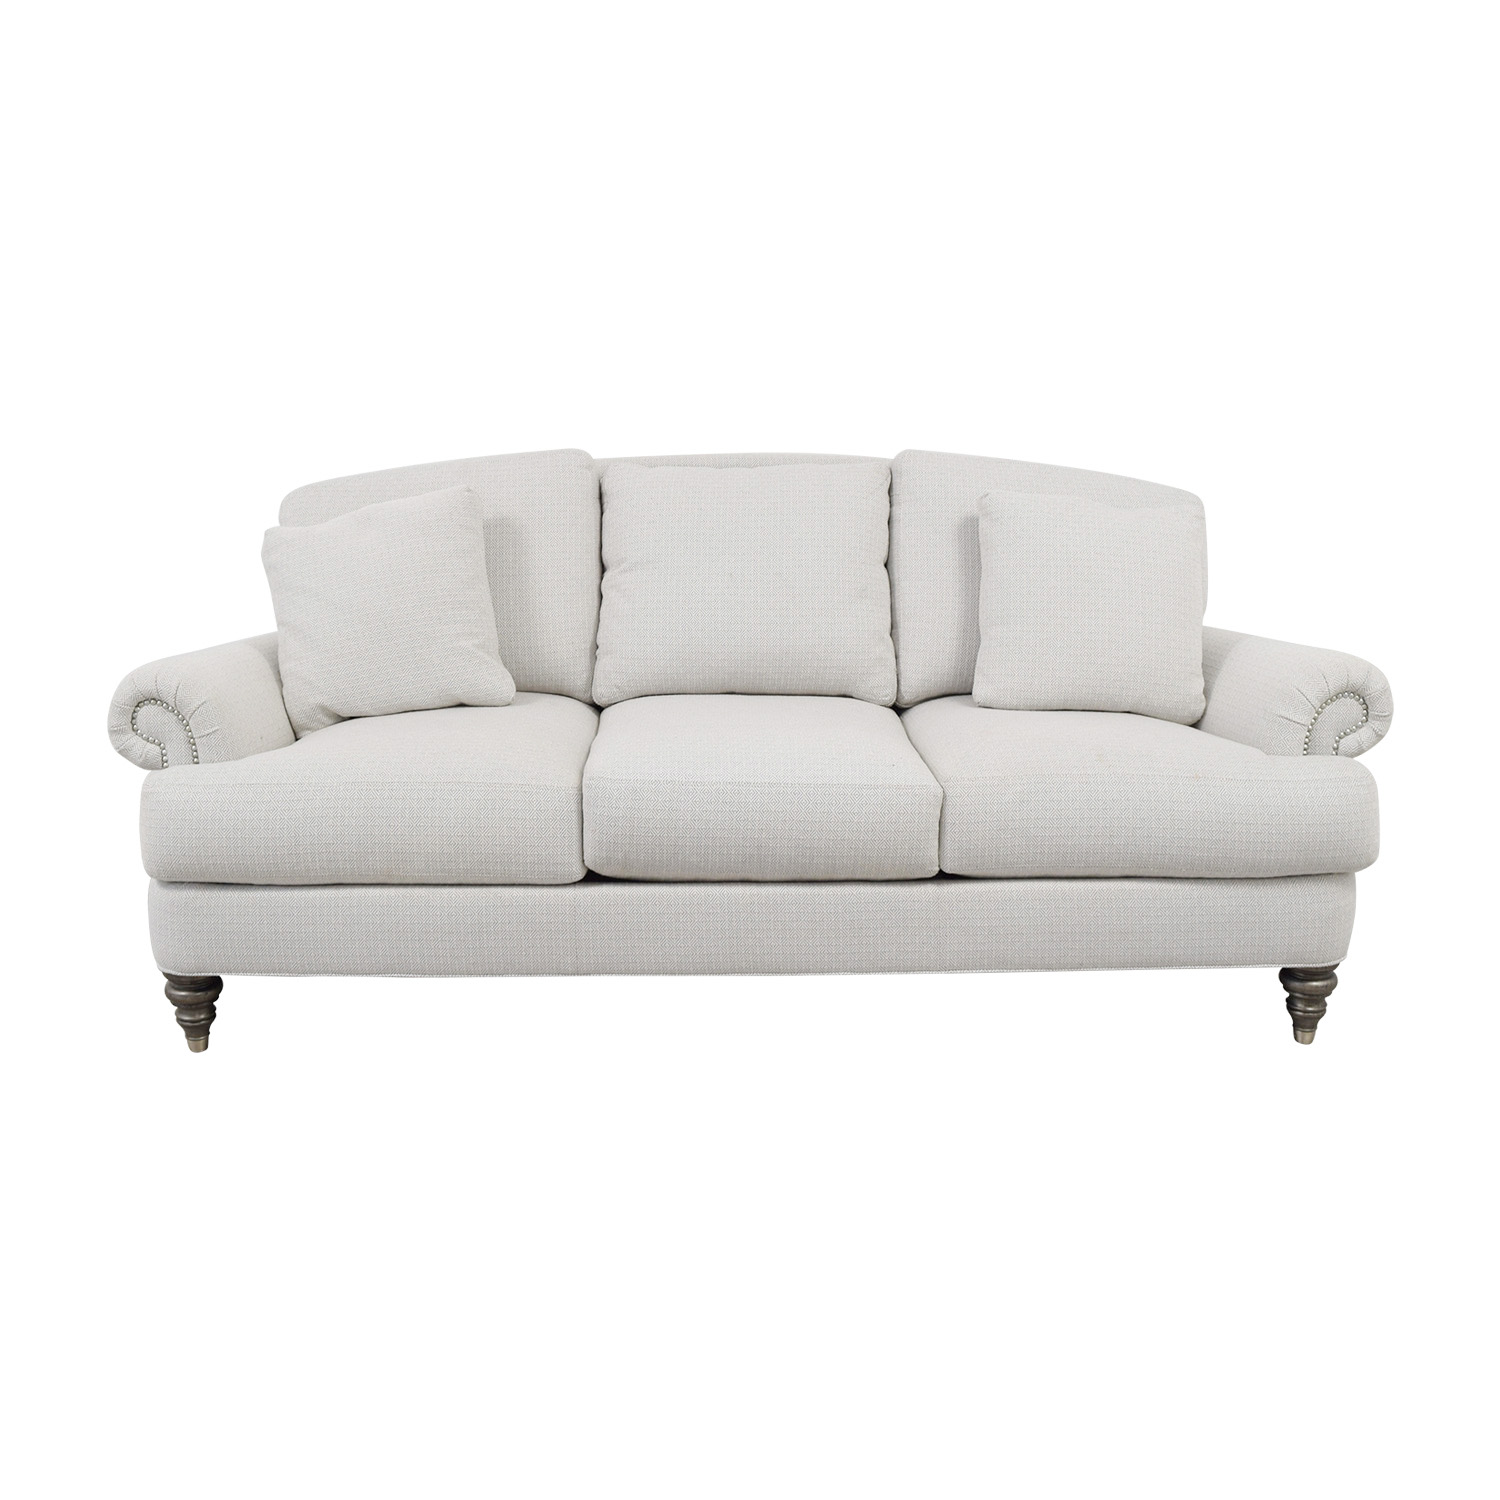 Ethan Allen Ethan Allen Hyde White Three-Cushion Sofa nj